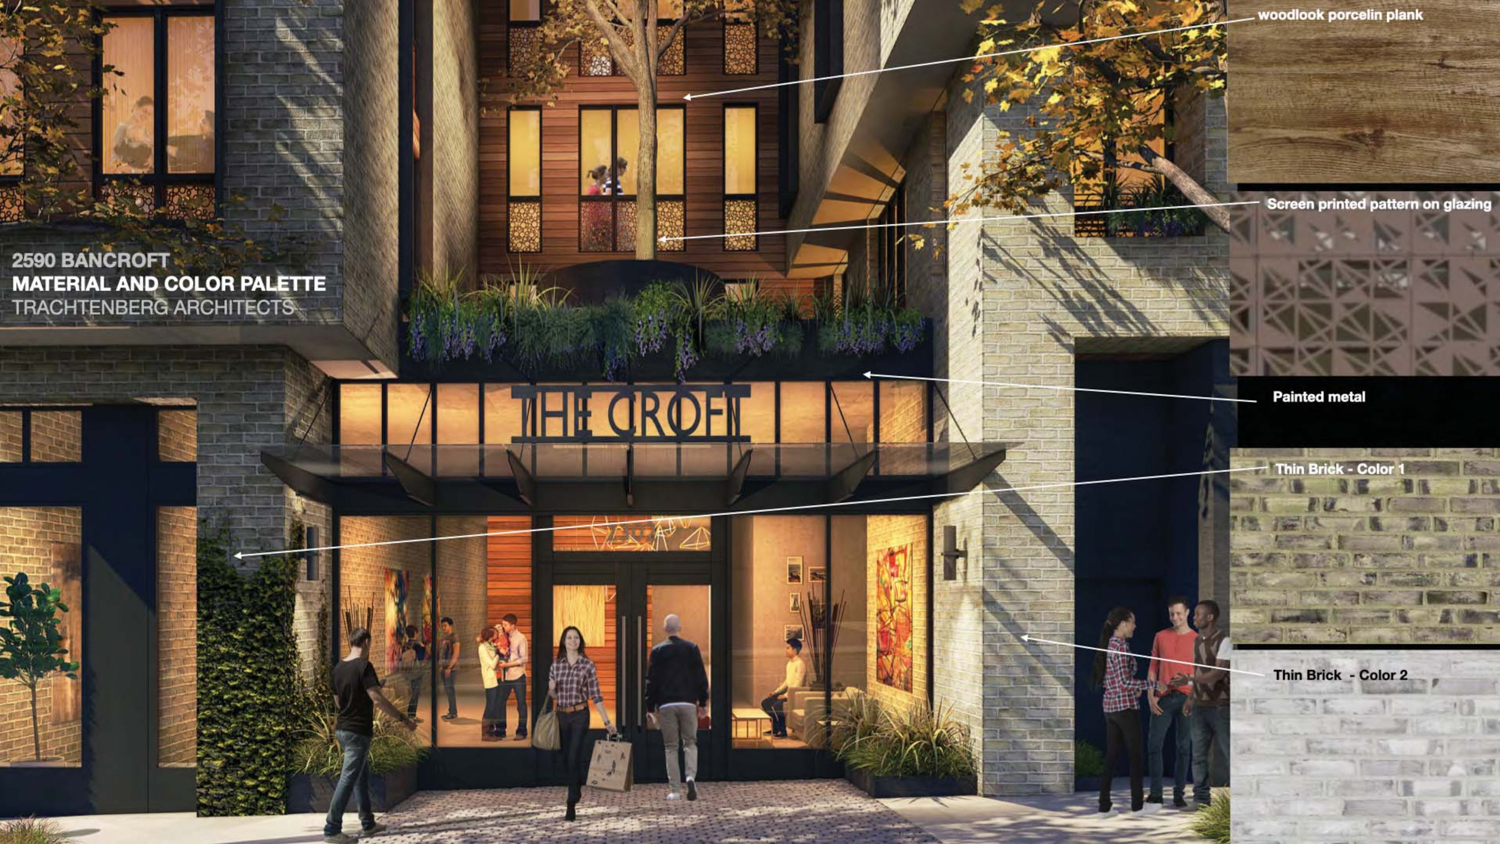 2590 Bancroft Way lobby with facade materials illustrated, rendering by Trachtenberg Architects